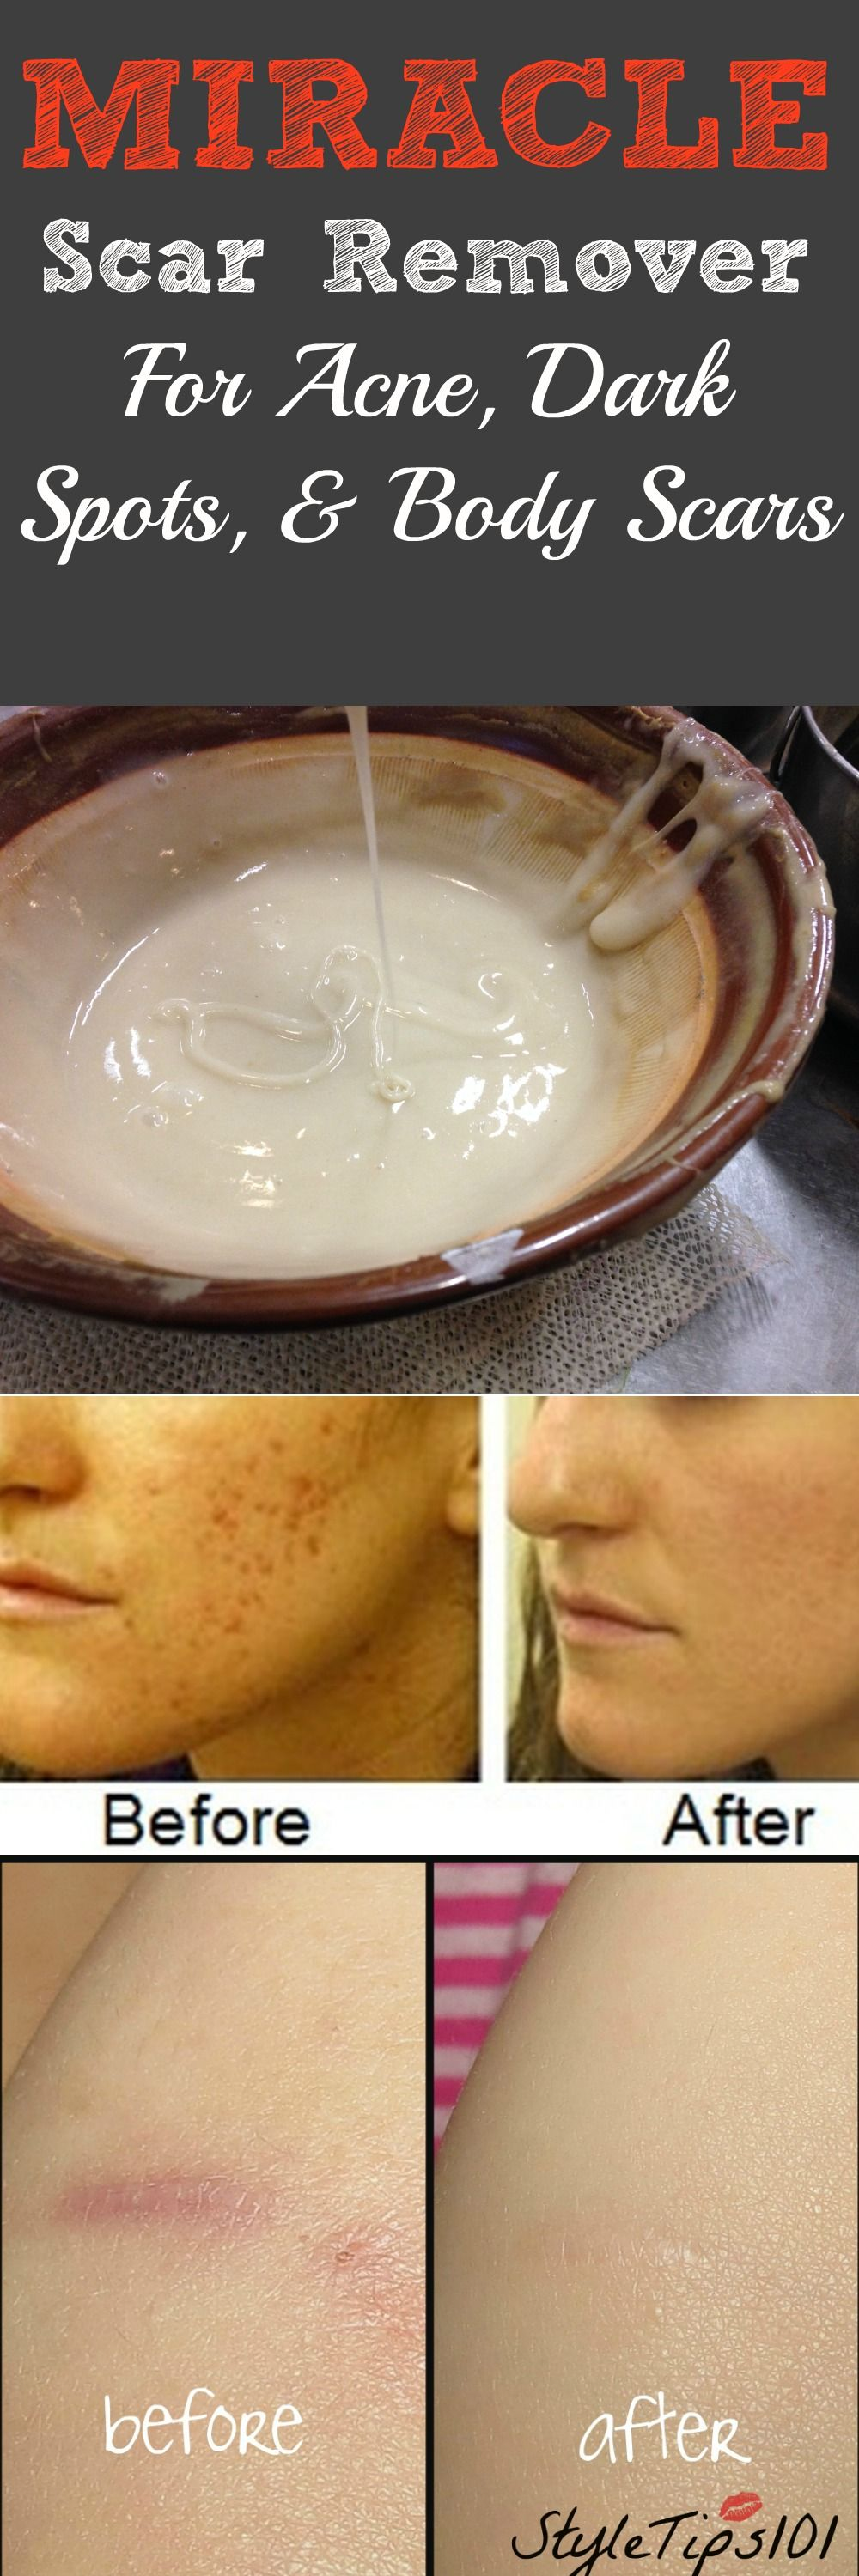 Miracle Homemade Scar Remover For Acne and Dark Spots  ac47b2c784